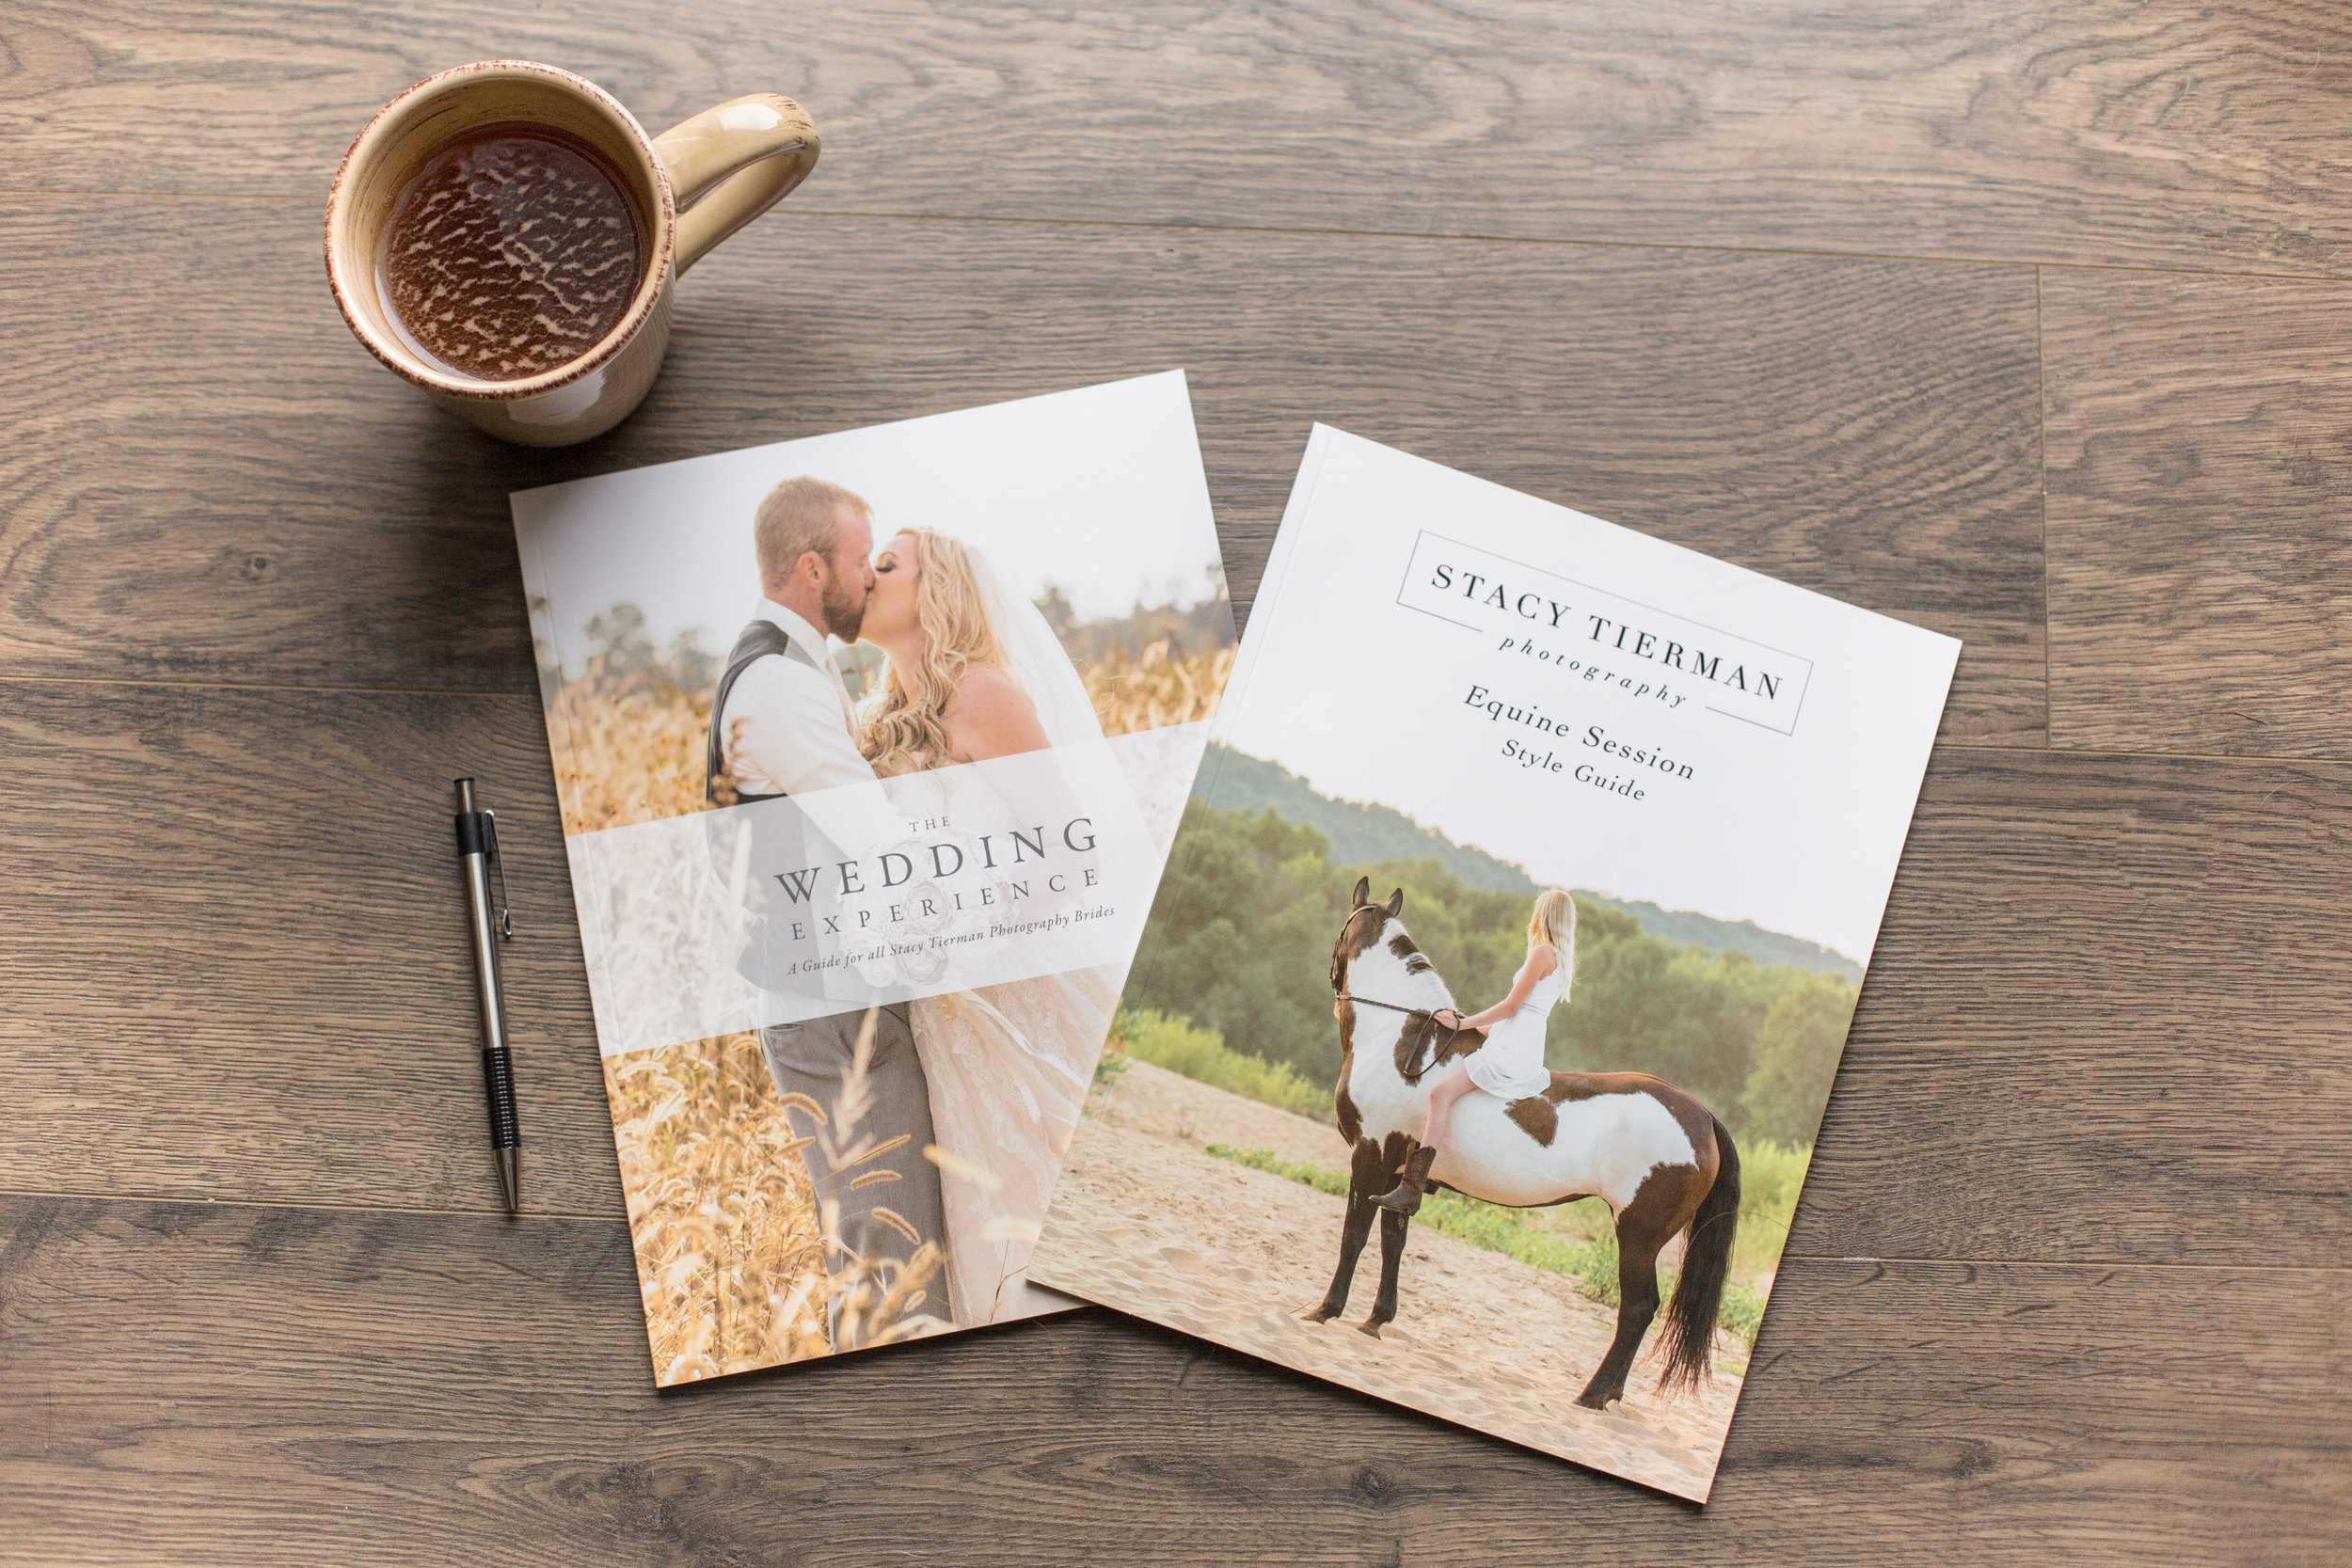 Each session includes a digital 33 page style guide magazine - This magazine includes helpful tips on preparing you and your horse for a stress free session